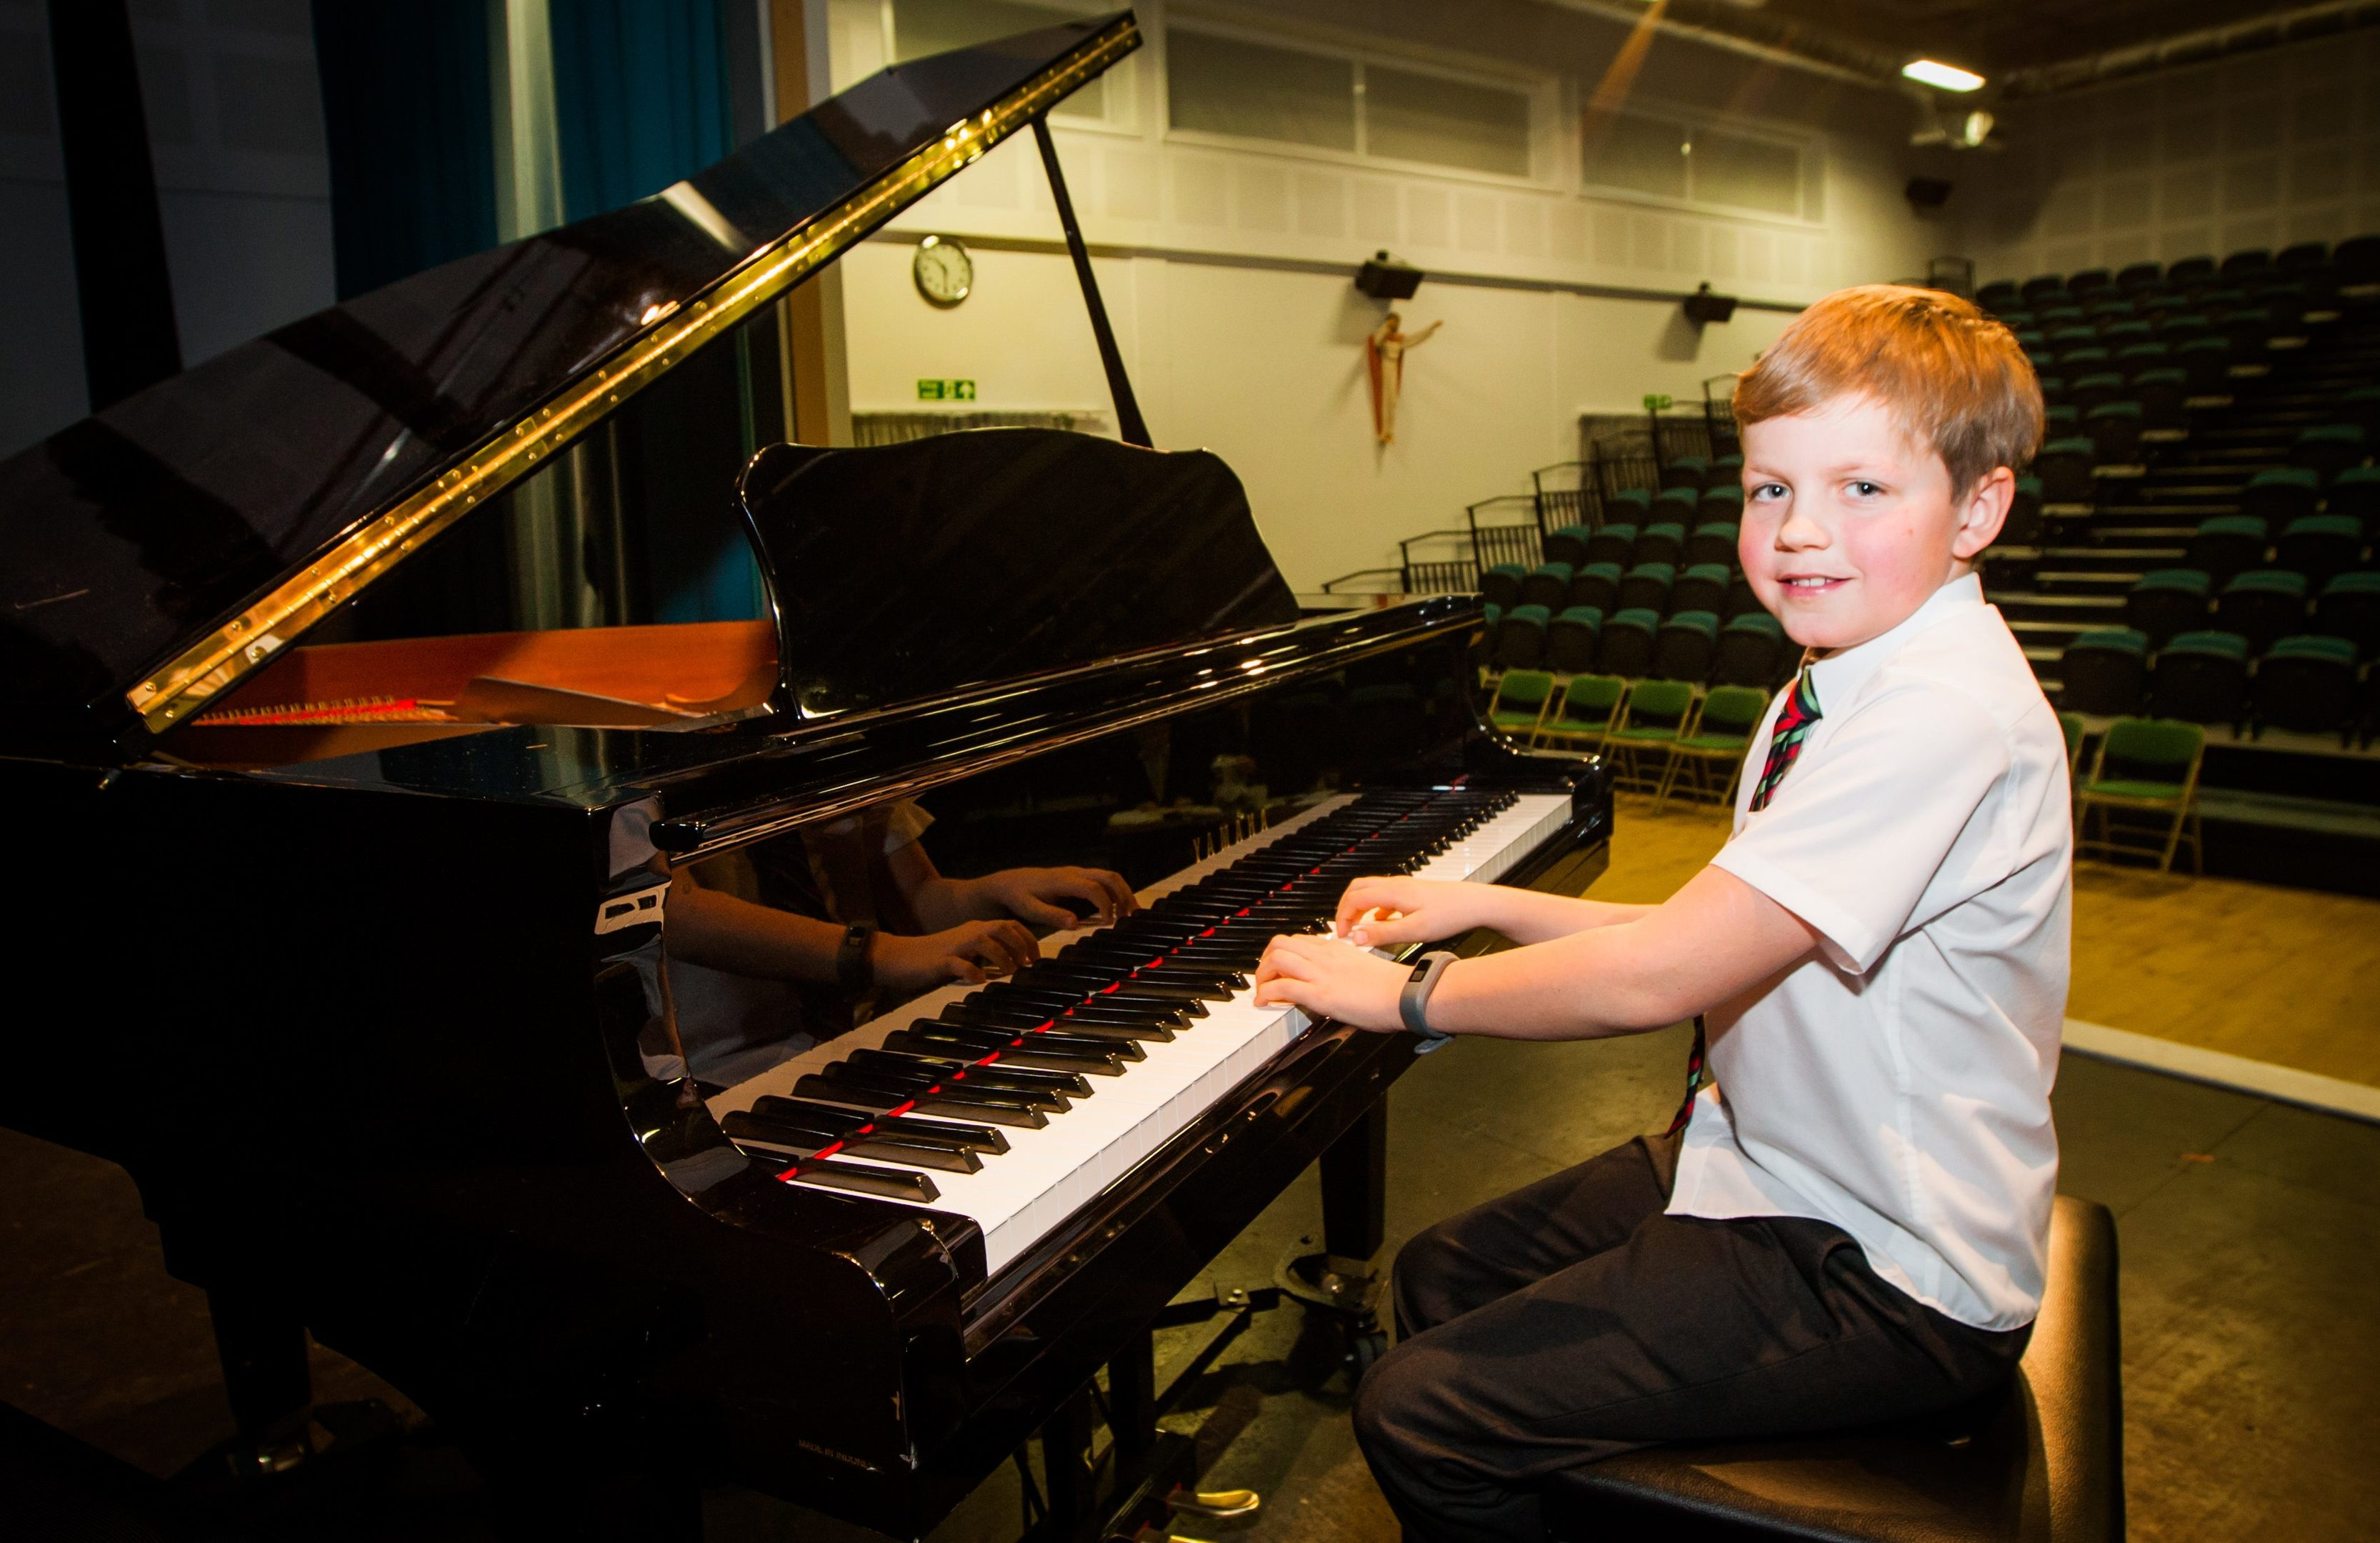 Cormac Scrimgeour of Scone, winner of piano solo, beginners under 12 class.